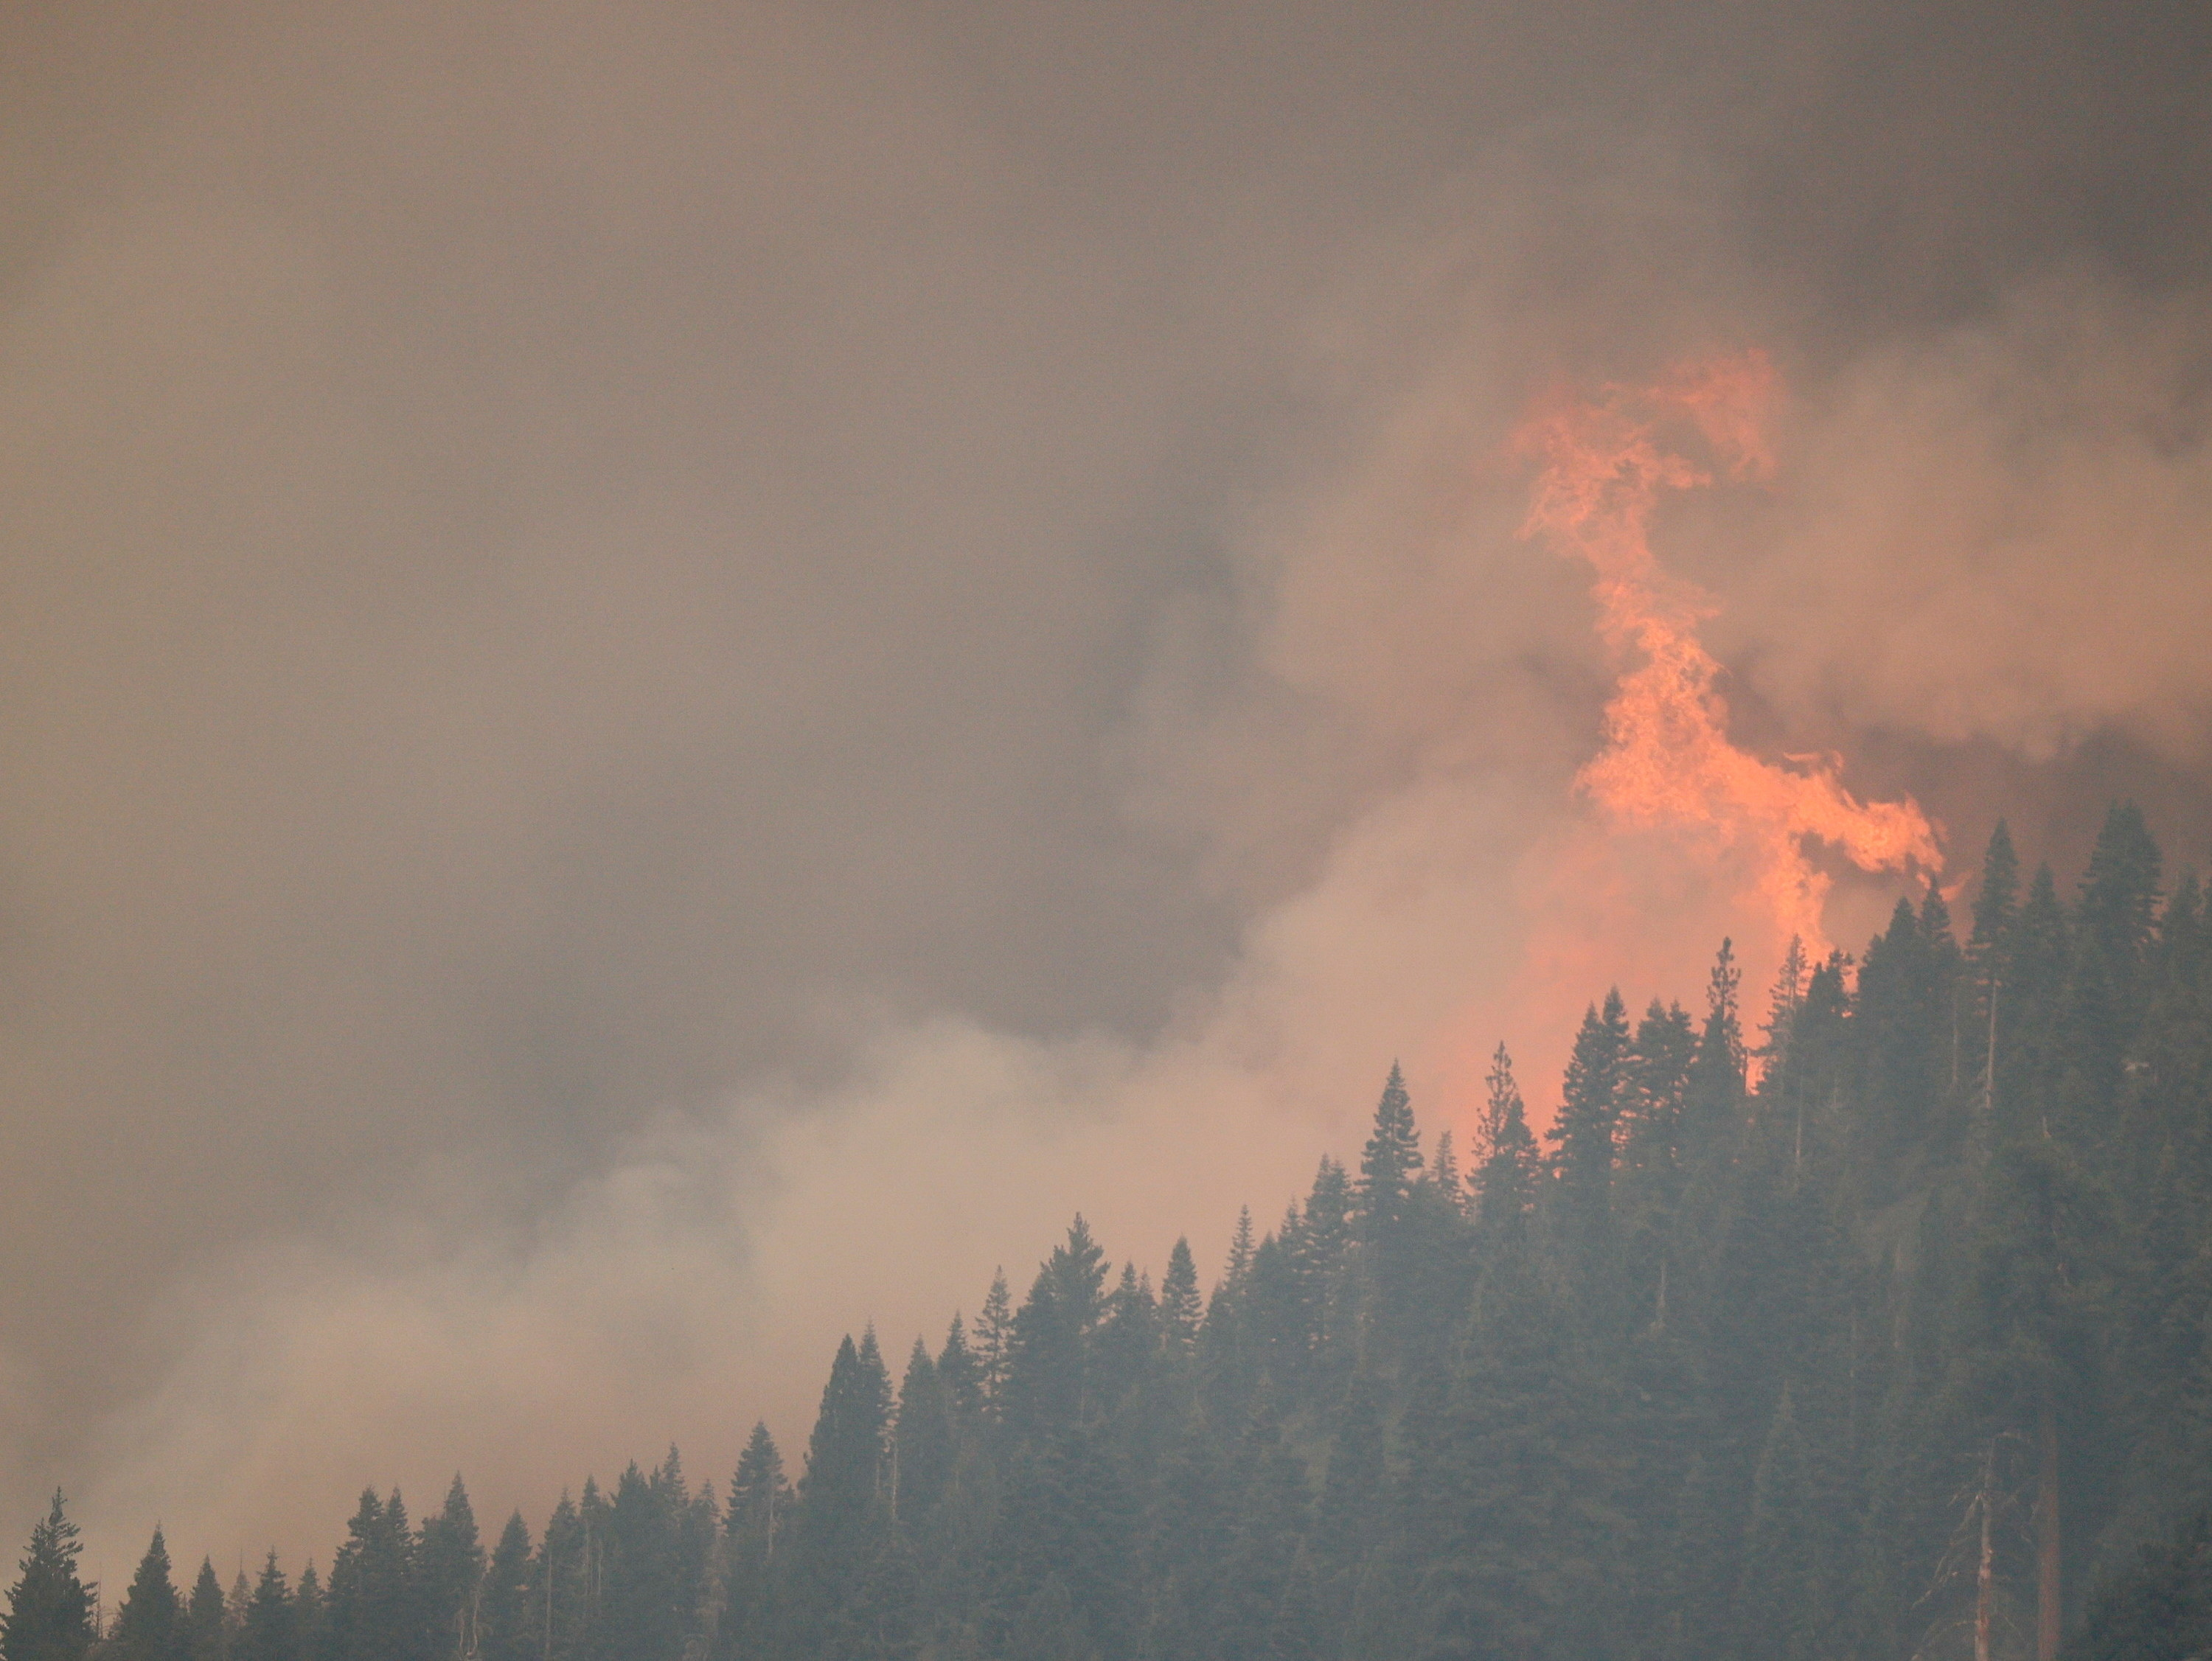 Flames taller than pine trees on a hillside shoot into the sky